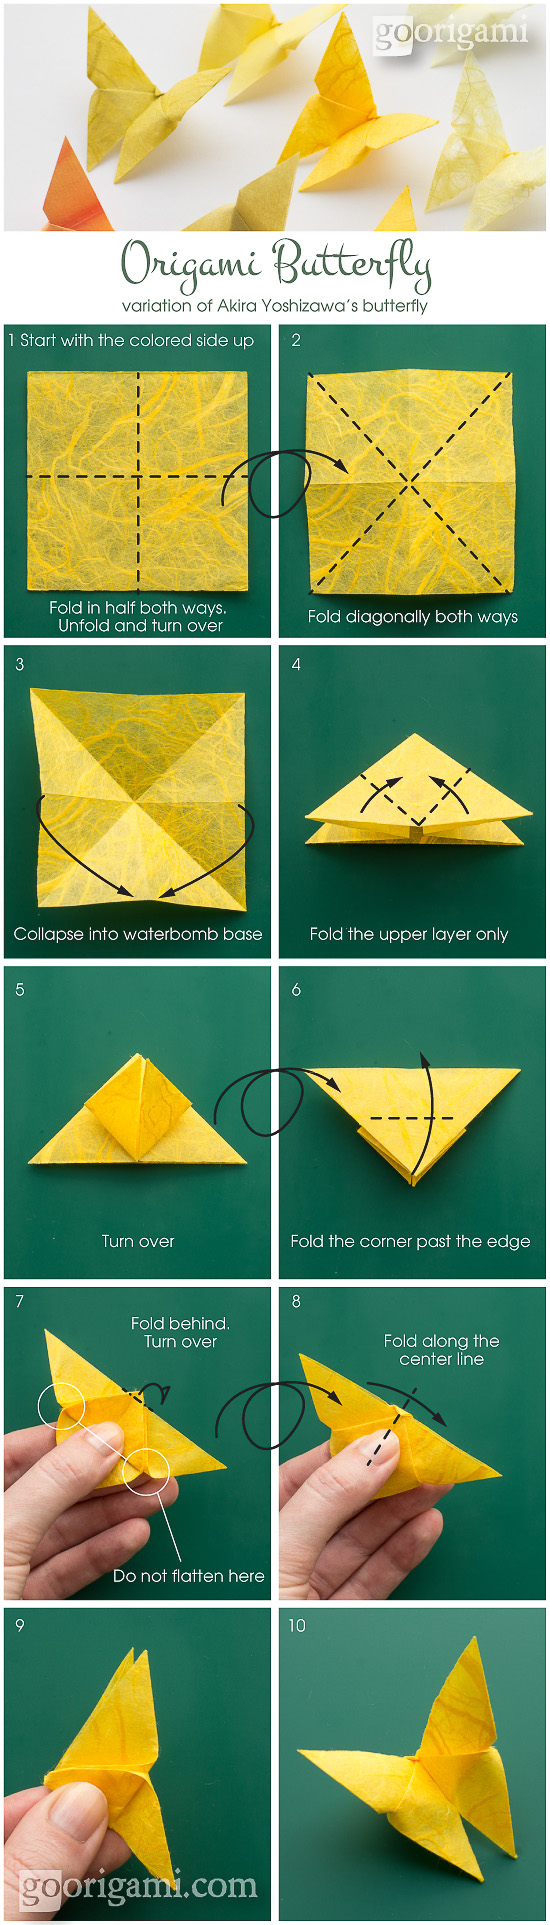 Best Origami Butterfly Ever Instructions Go Diagram For Kids Pin It On Pinterest